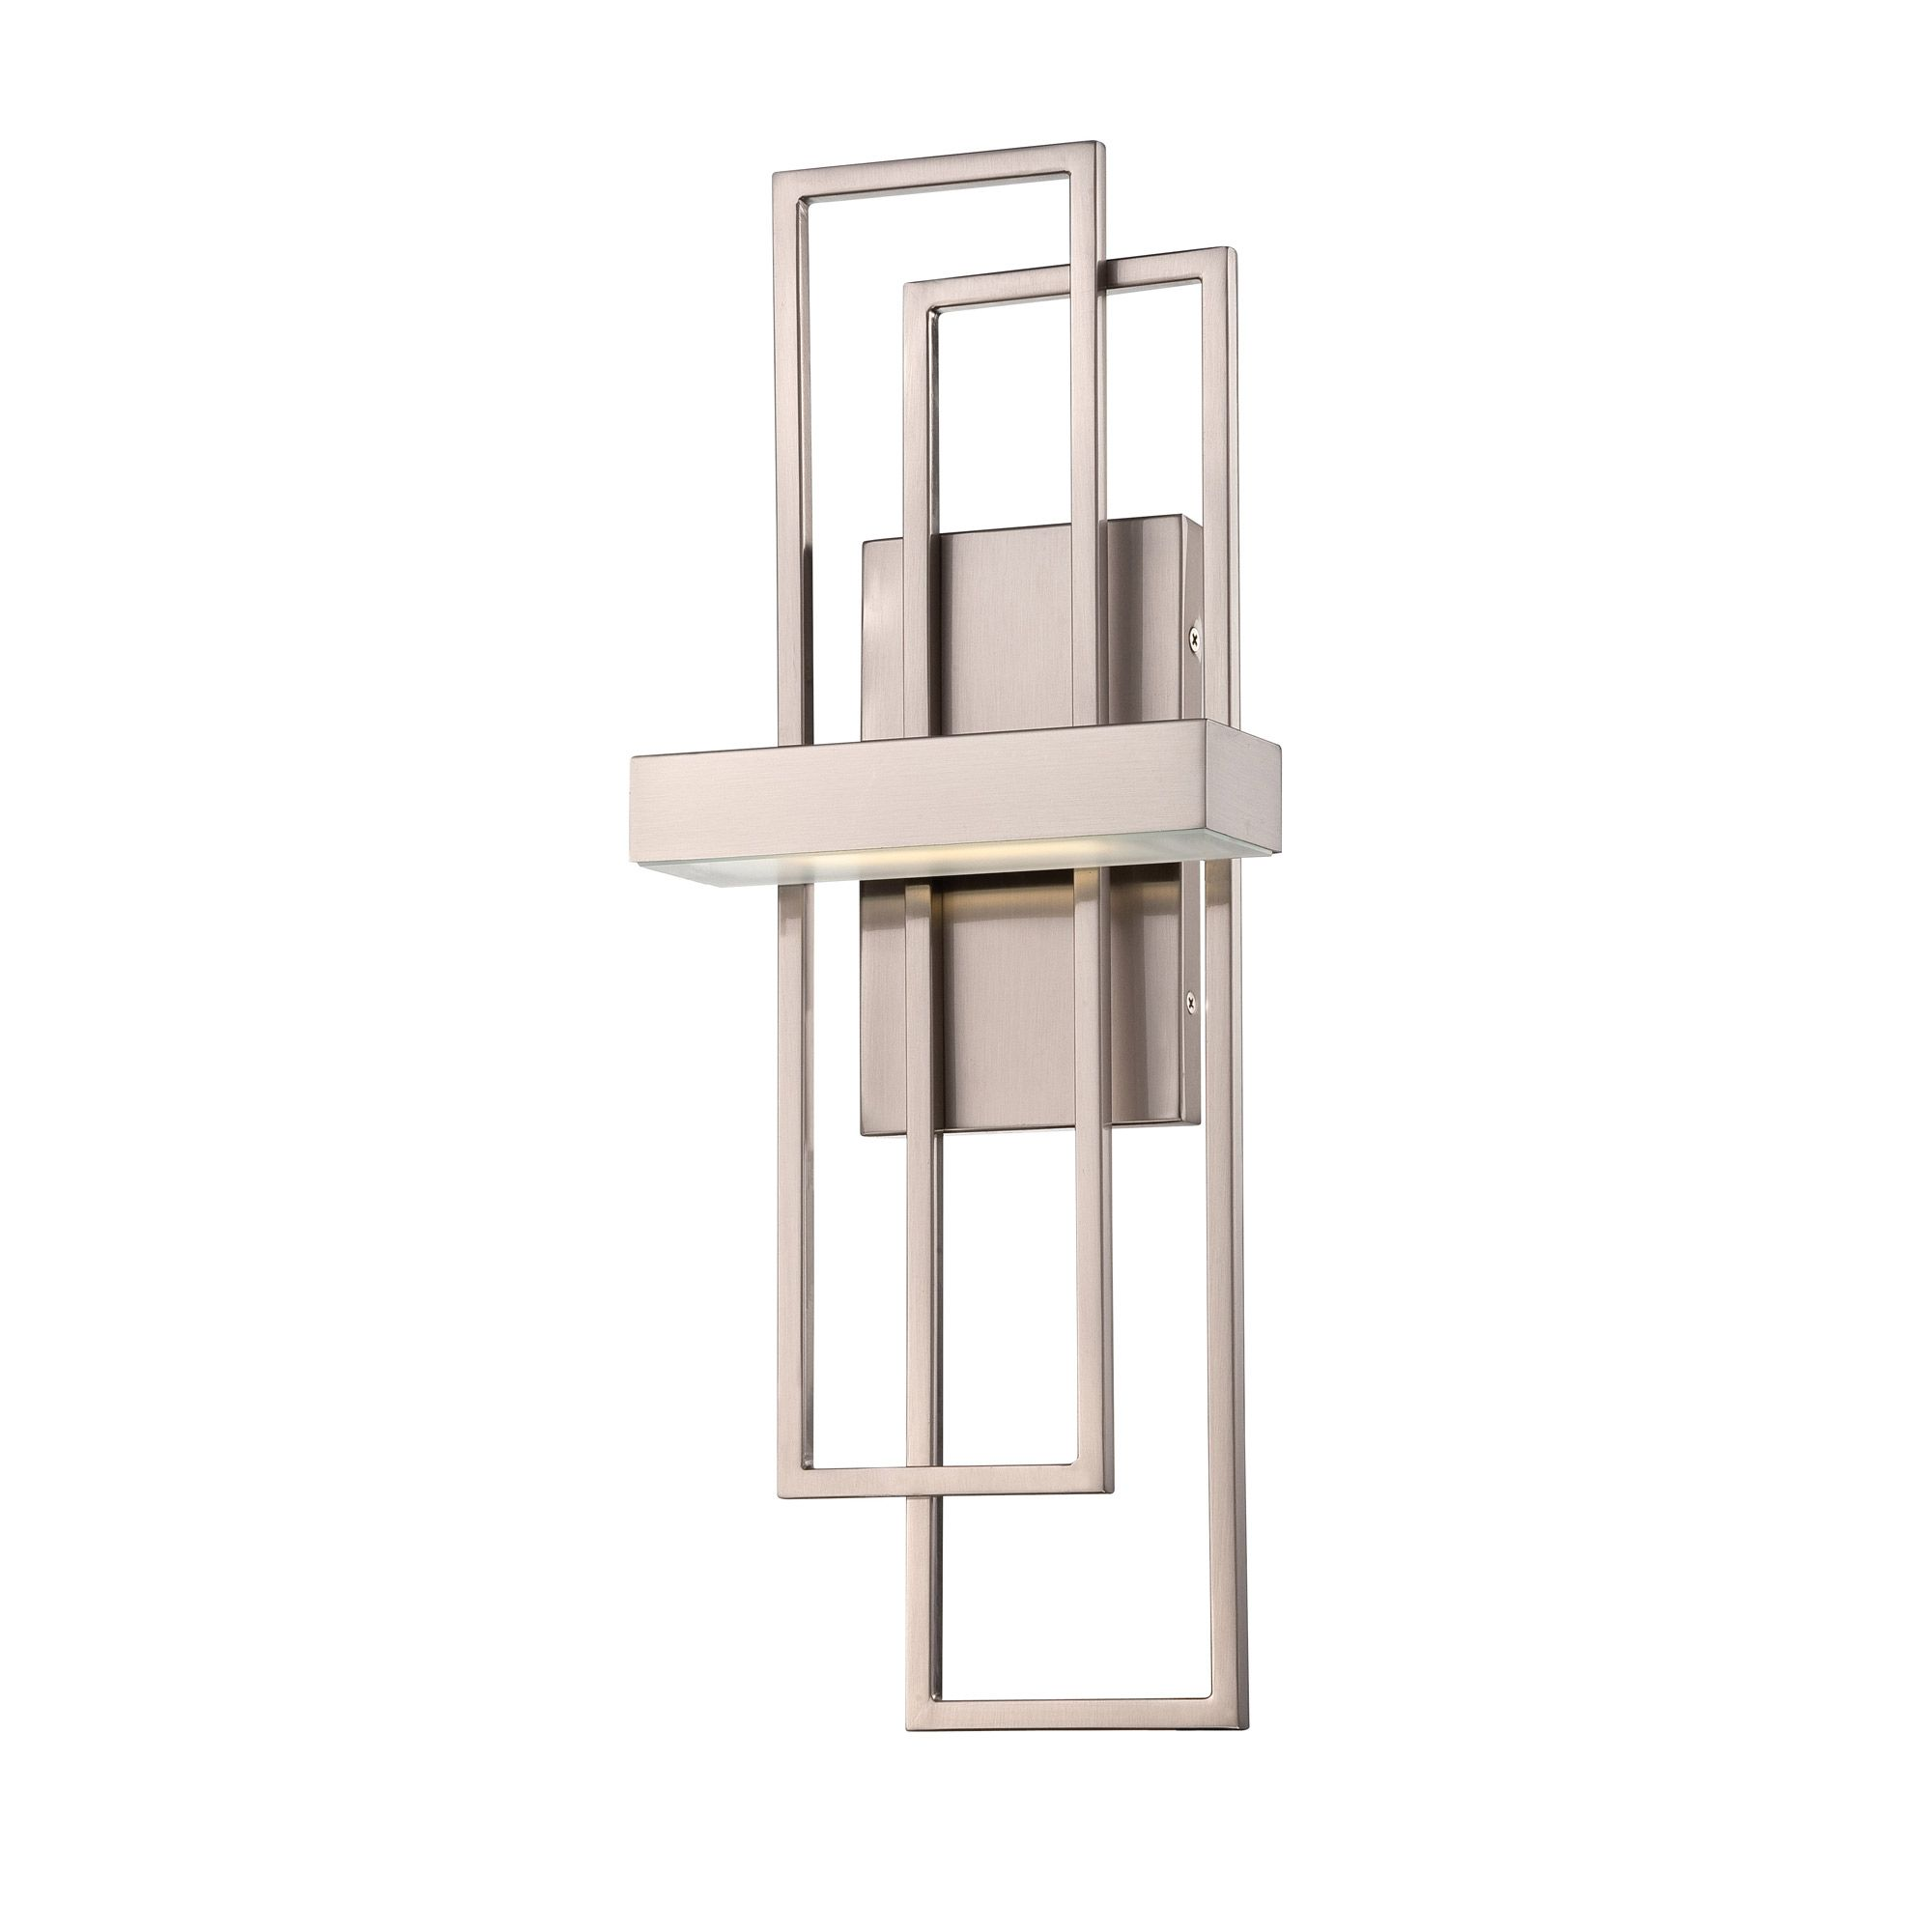 Frame Wall Sconce features a Frosted diffuser with a Hazel Bronze or Brushed Nickel finish. One 4.8 watt, 120 volt 2700K 80CRI 290 lumens LED type bulb is included. Dimmable with a standard low voltage electronic dimmer. ADA compliant. UL listed. 7.875 inch width x 20.25 inch height x 4 inch depth.